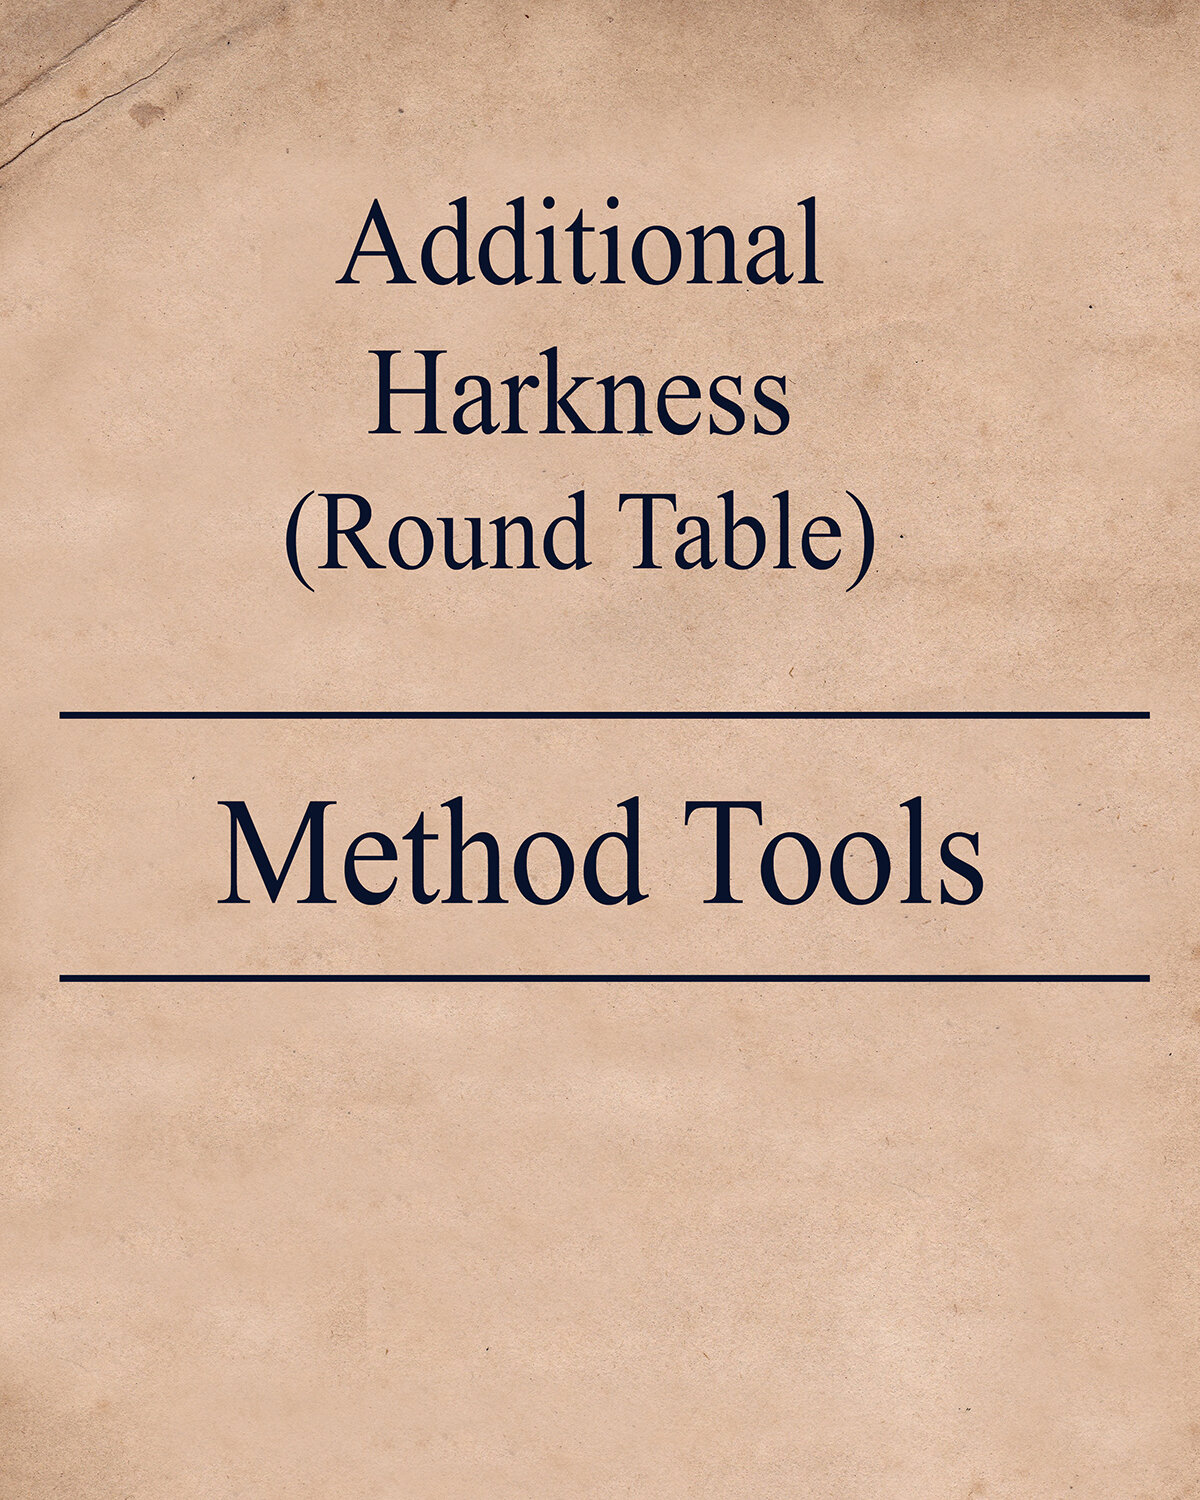 Additional Harkness Tools.jpg